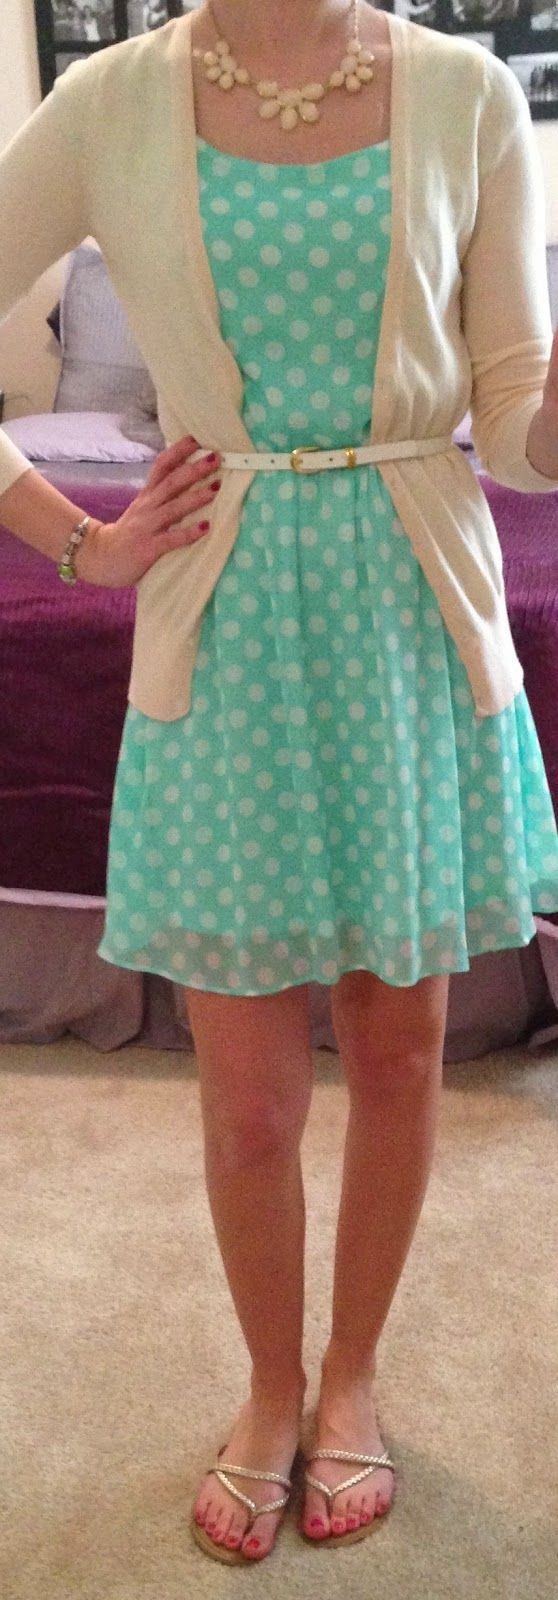 I love this color and style in a dress, though would like it longer